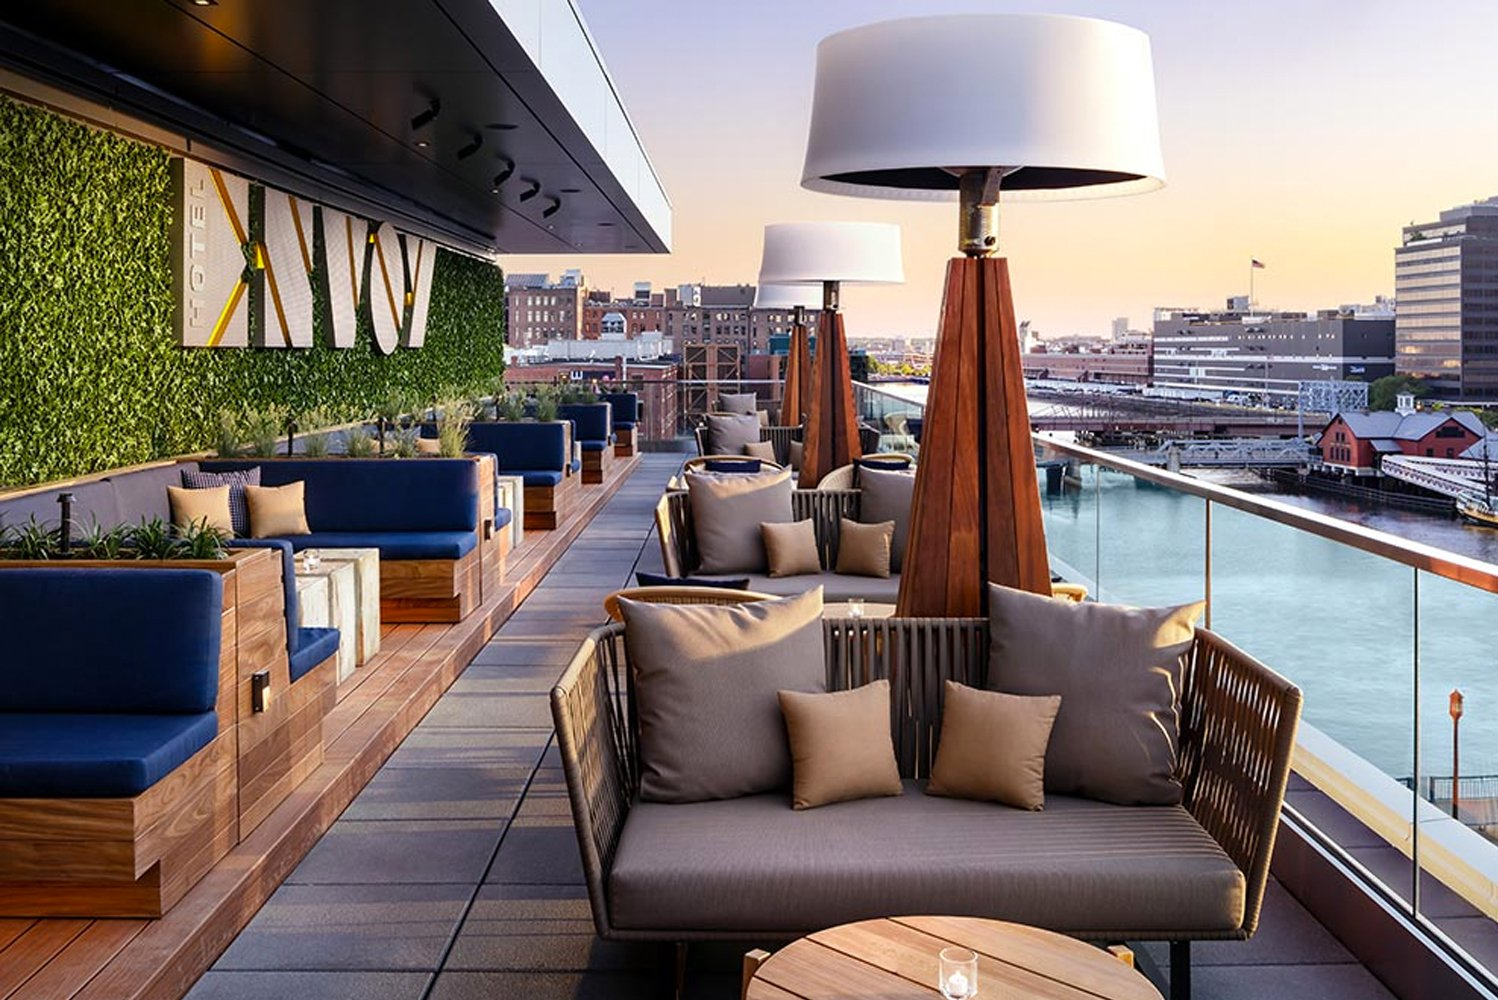 Lookout is an outdoor space with views of the Boston skyline and waterfront.